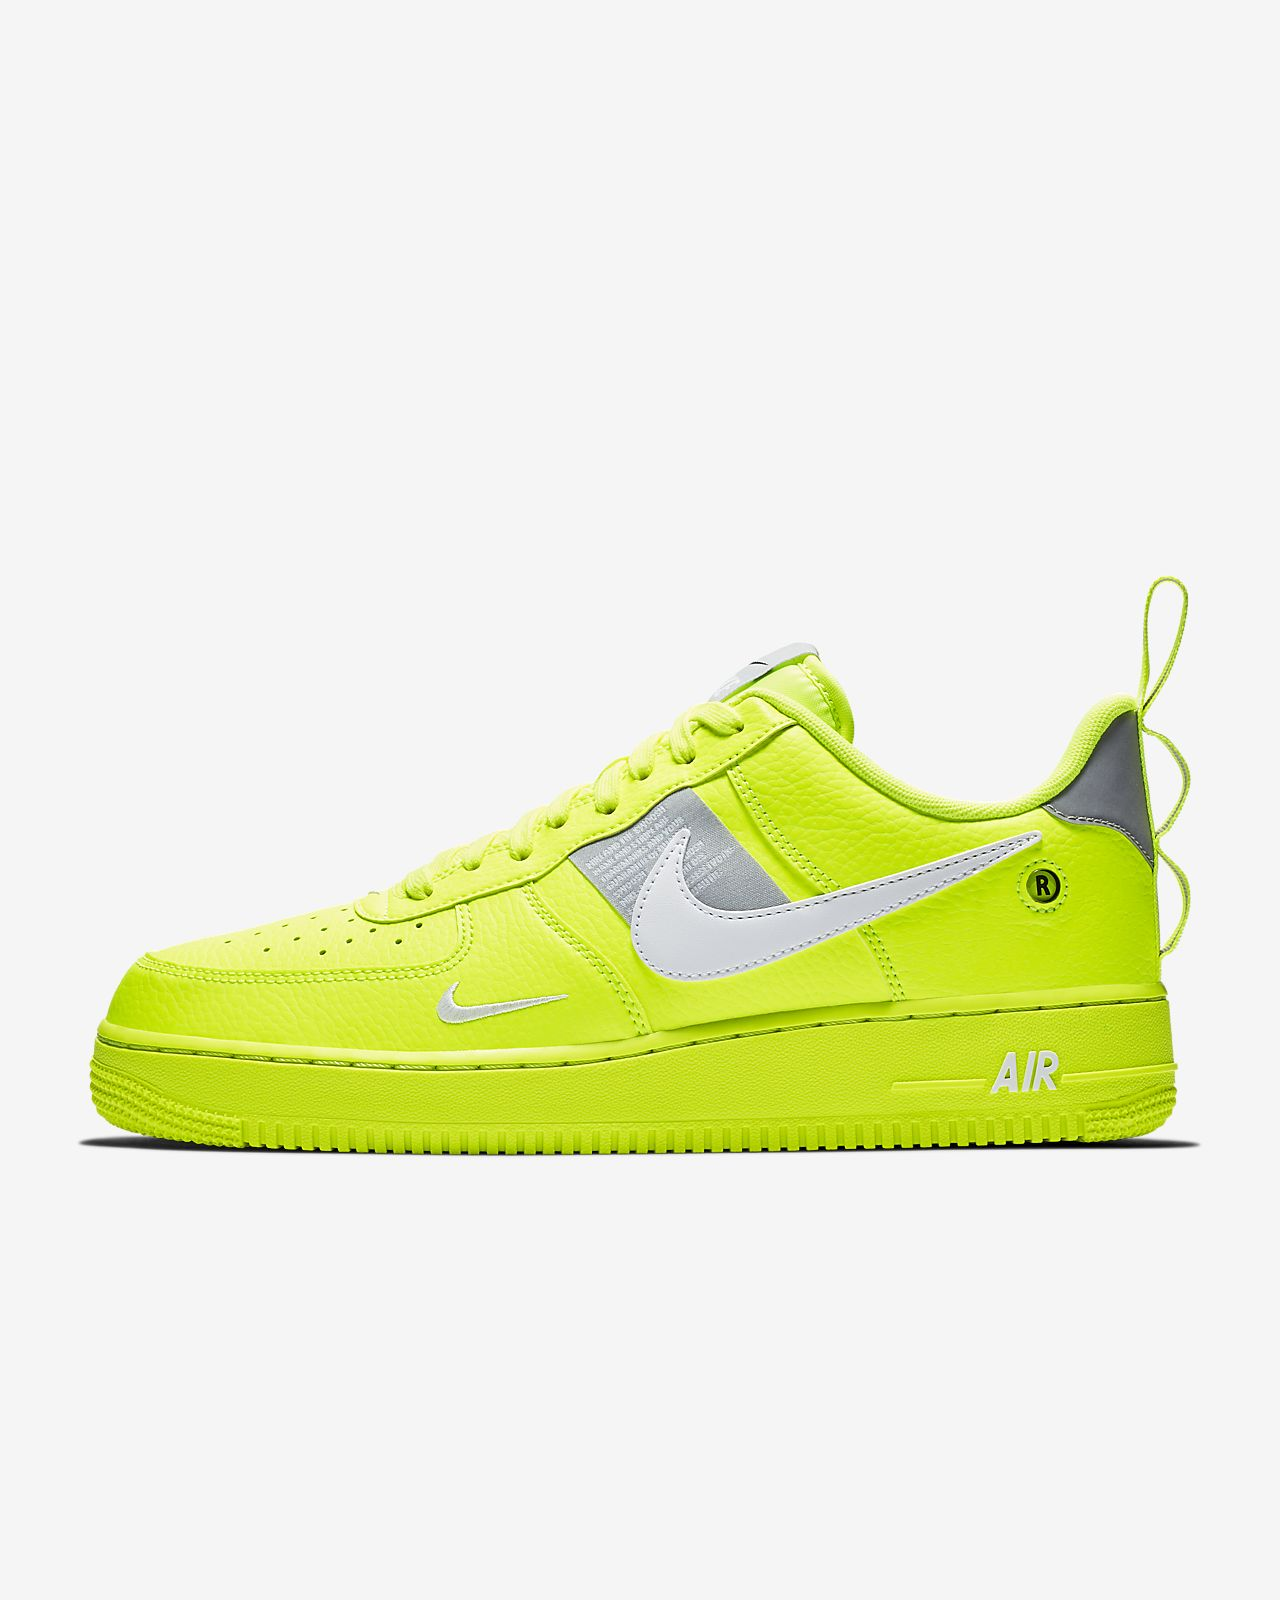 Nike Air Force 1 '07 LV8 Utility 男鞋